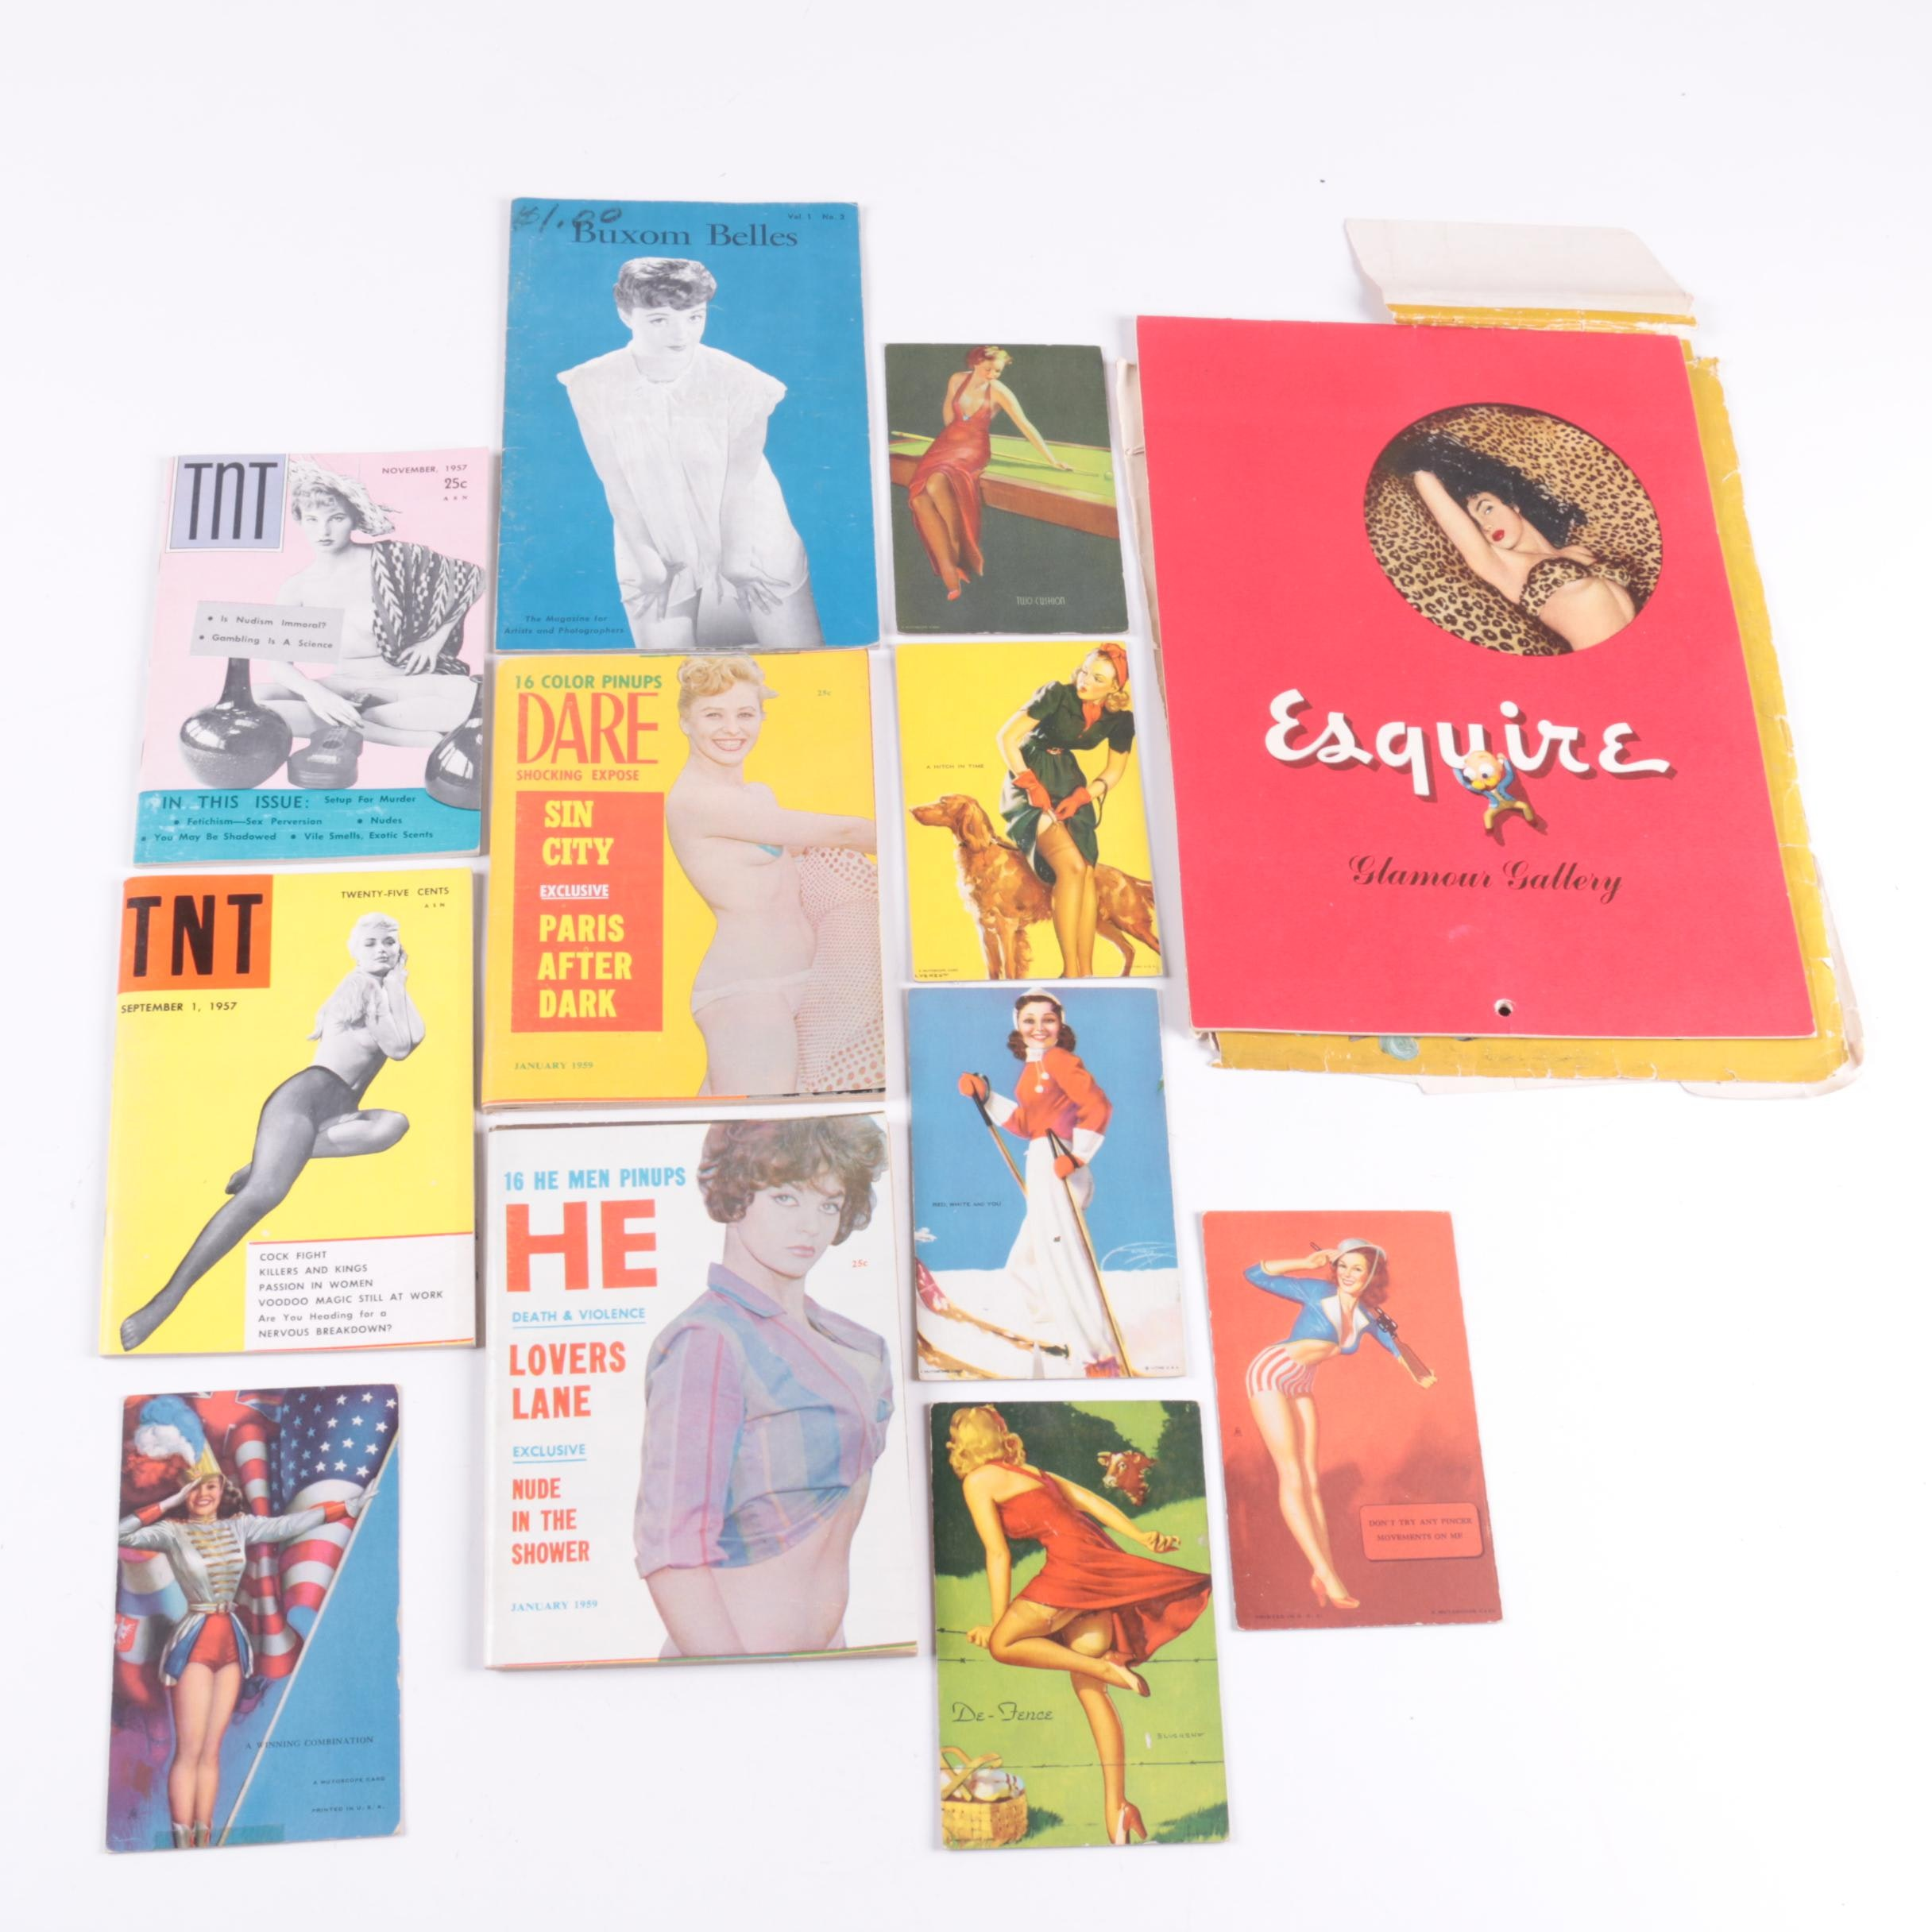 """Pin Up Magazines, Cards and 1948 """"Esquire Glamour Gallery"""""""